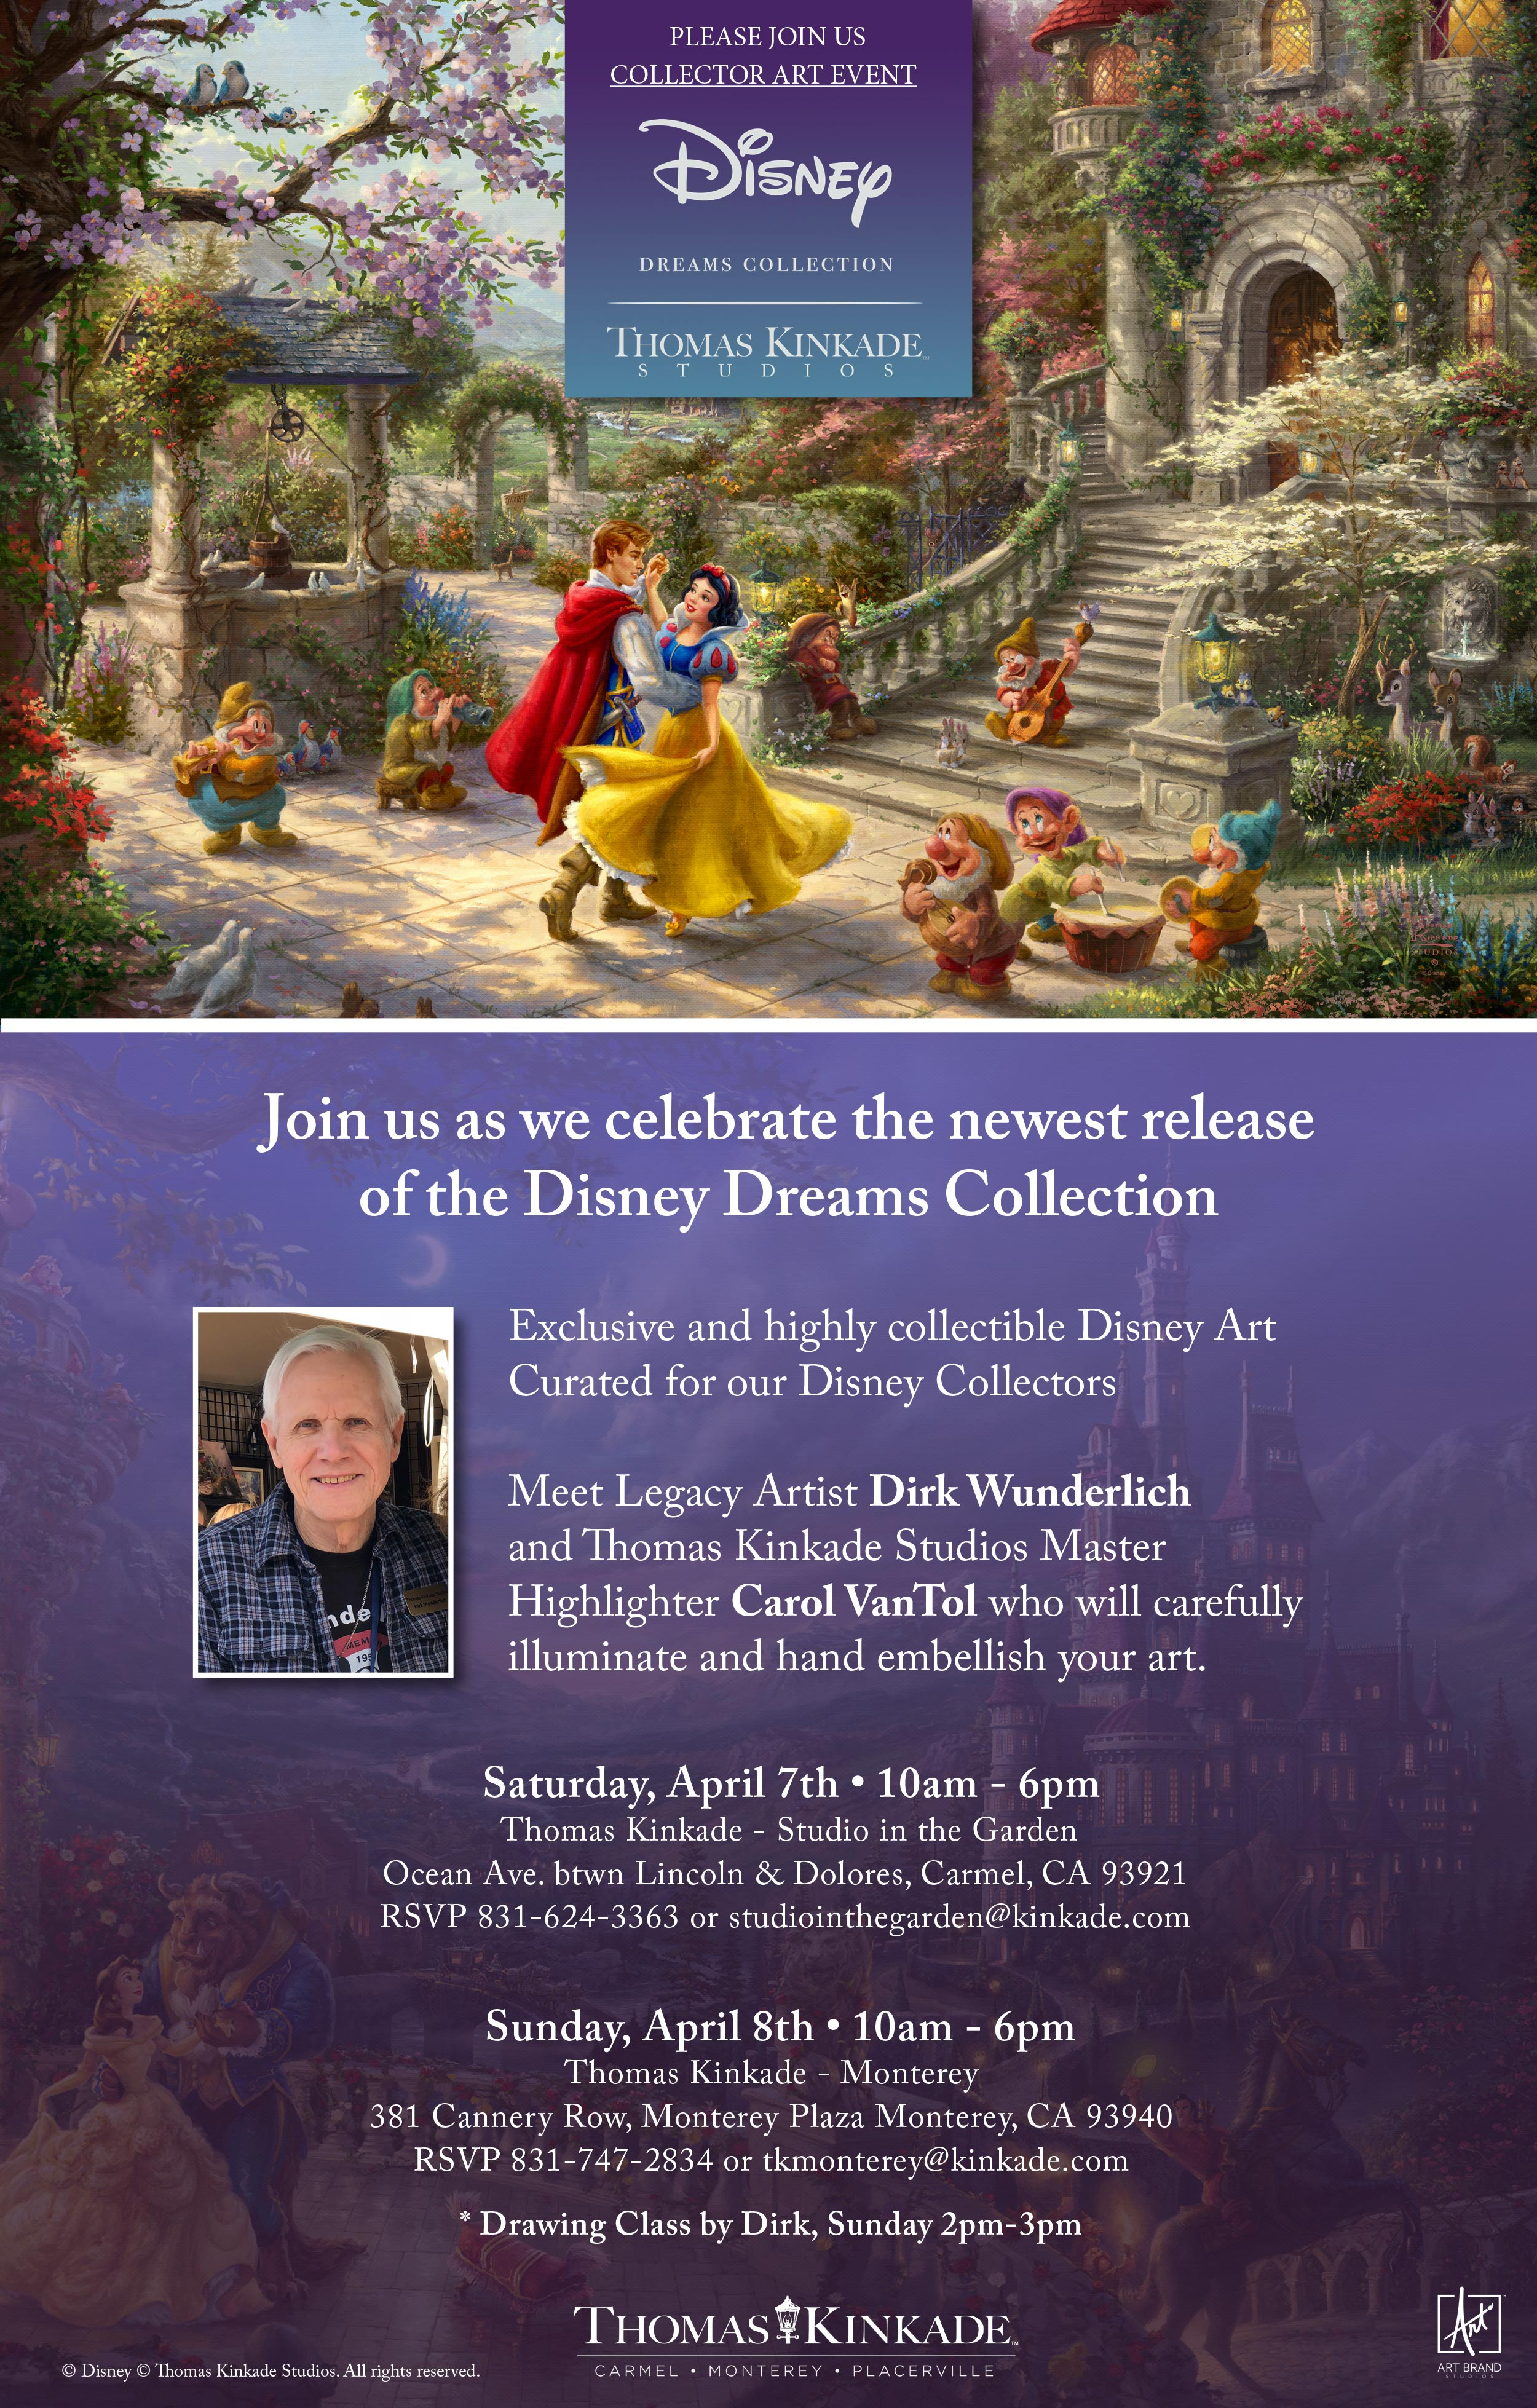 Carmel Disney Event